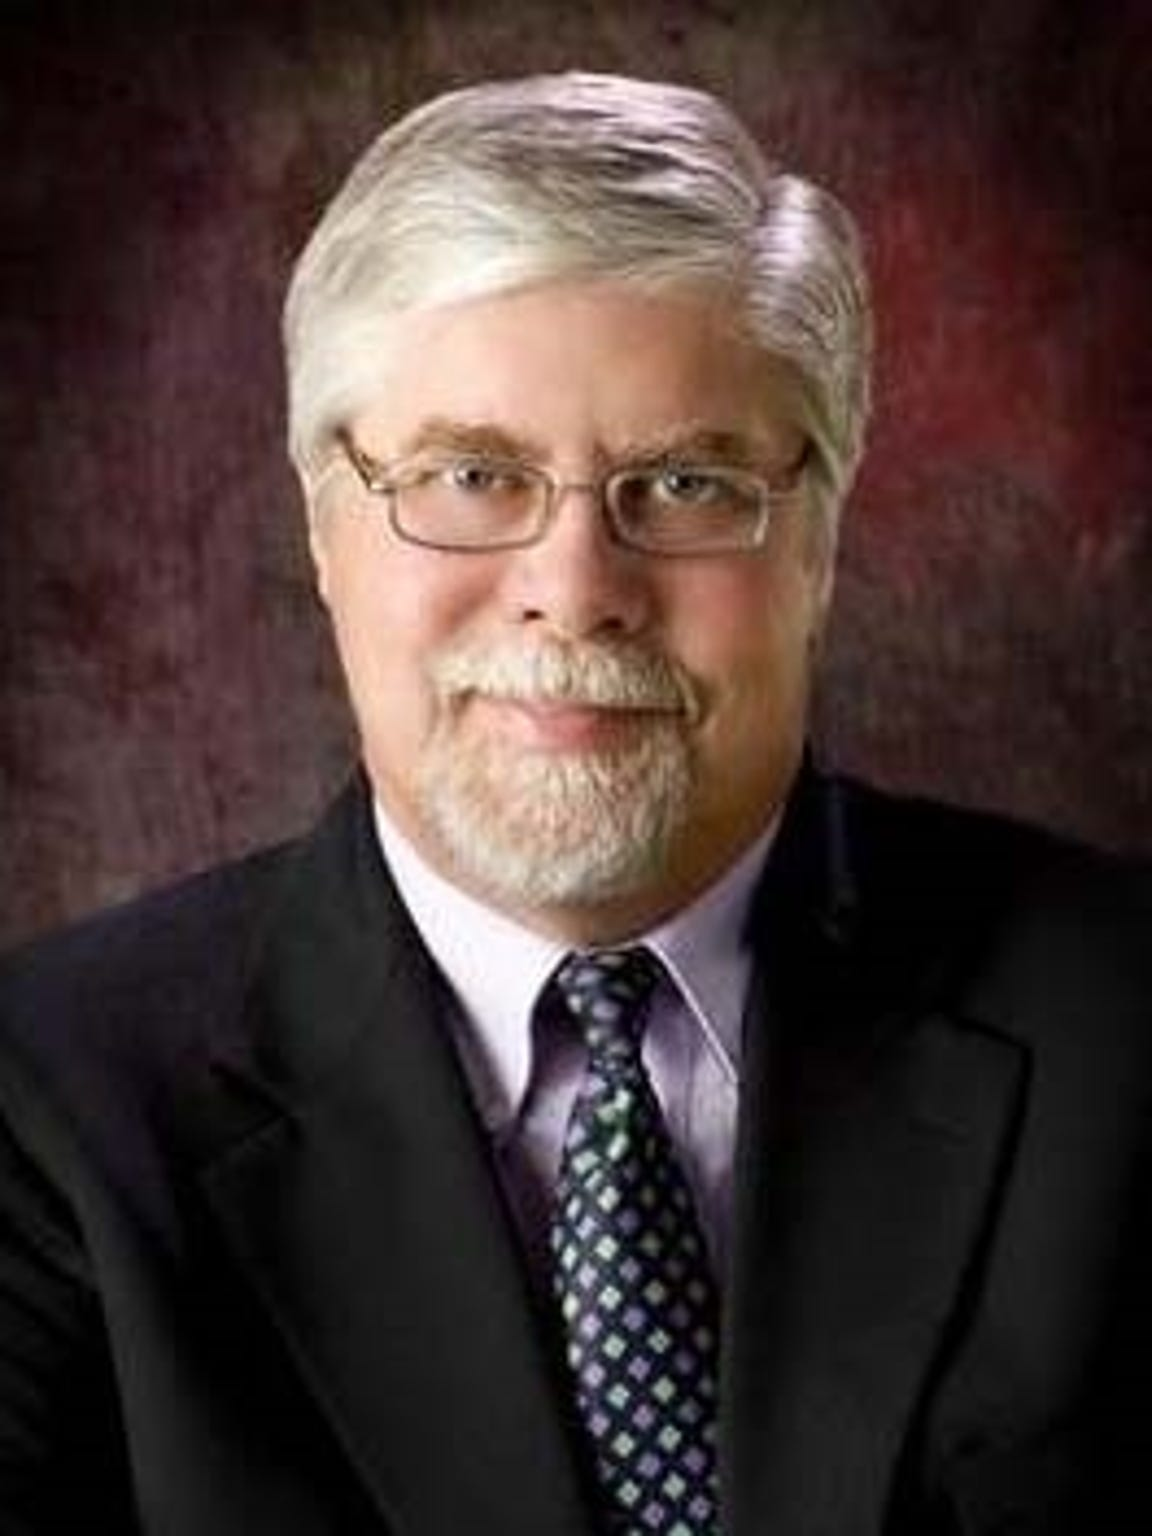 Bob Stephens s the mayor of Springfield and has served